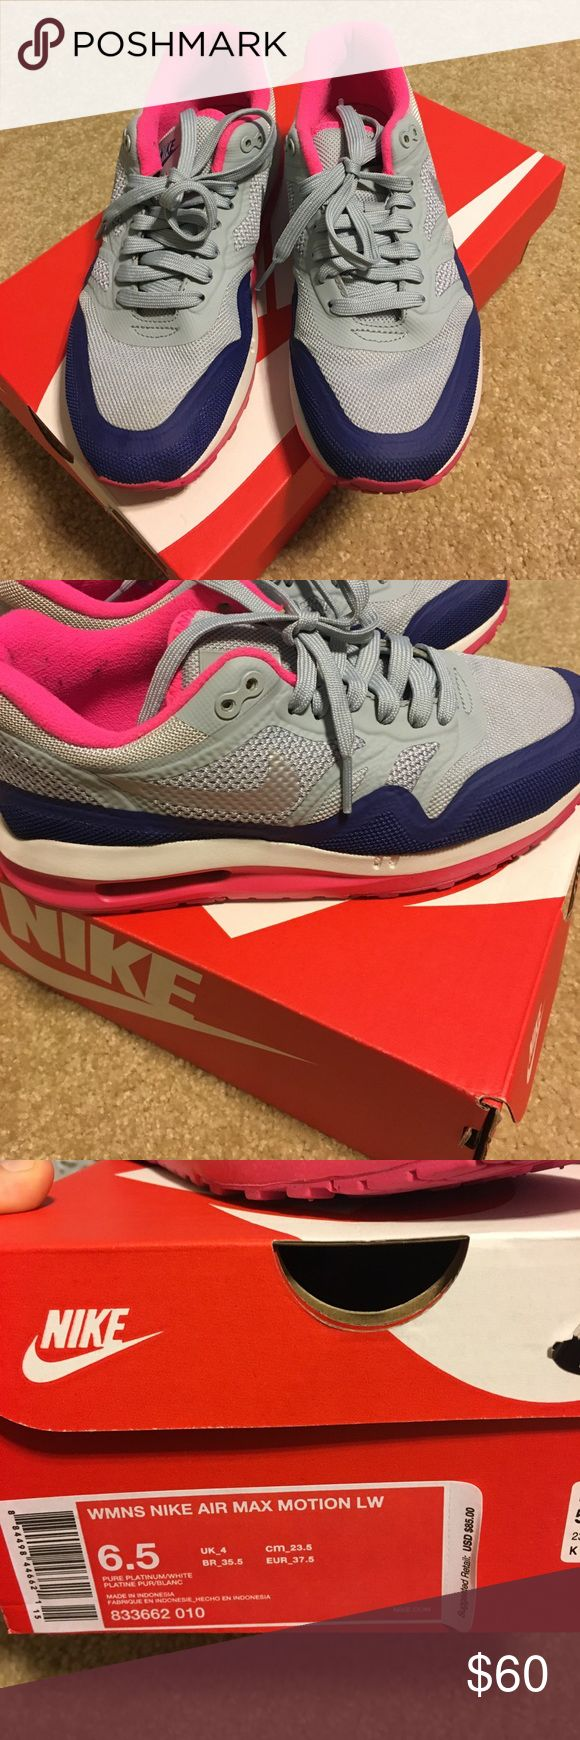 Women's size 6 1/2 Nike air max Women's Nike air max very comfortable worn a few times in excellent very clean condition as you can see from pictures retail price is $85 open to responsible offers Nike Shoes Athletic Shoes